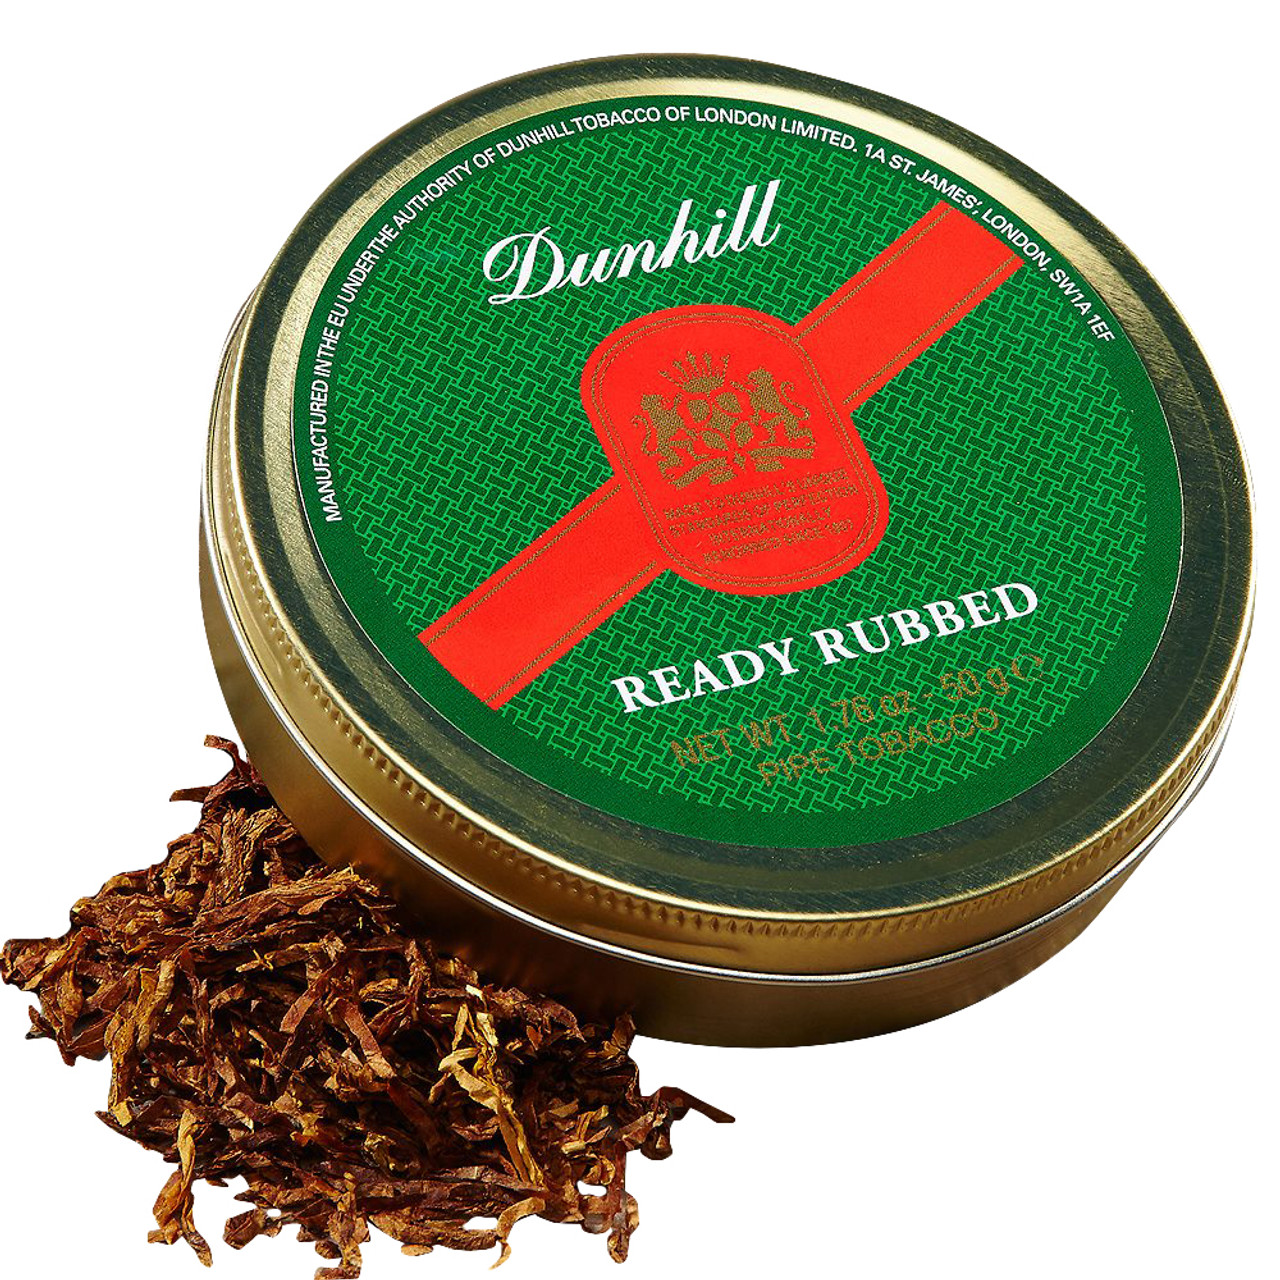 Dunhill Ready Rubbed Pipe Tobacco | 1.75 OZ TIN